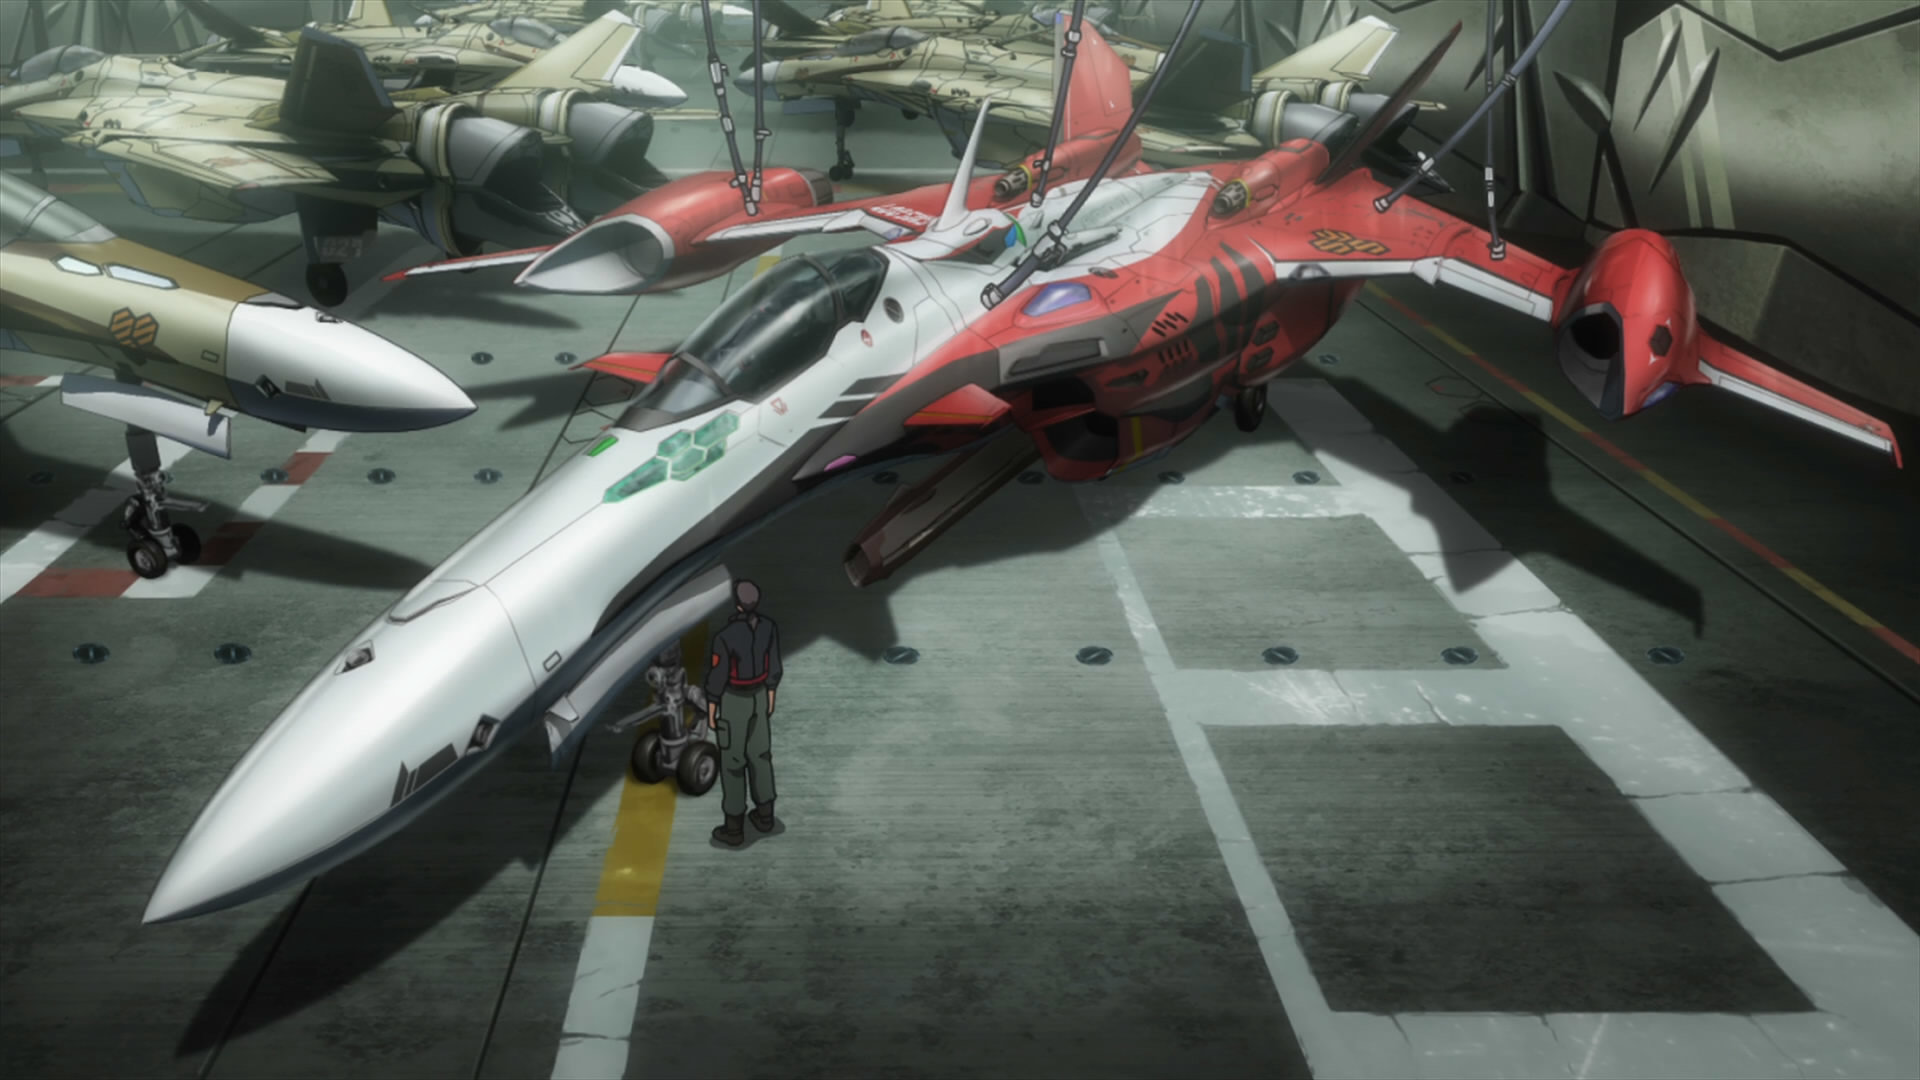 Awesome Macross free wallpaper ID:352014 for hd 1920x1080 desktop